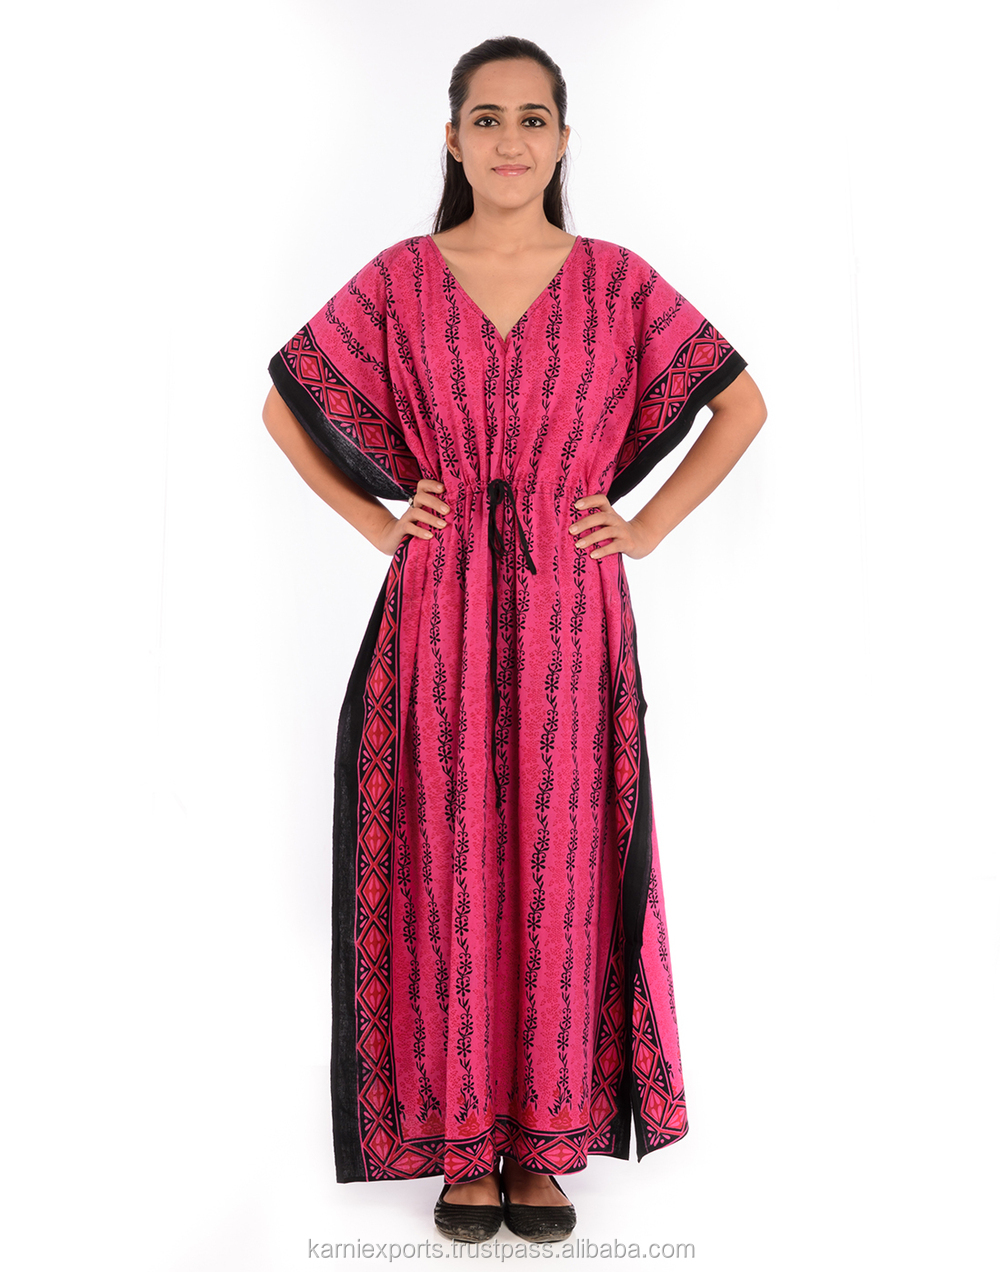 Dress night designs ladies forecast to wear in everyday in 2019